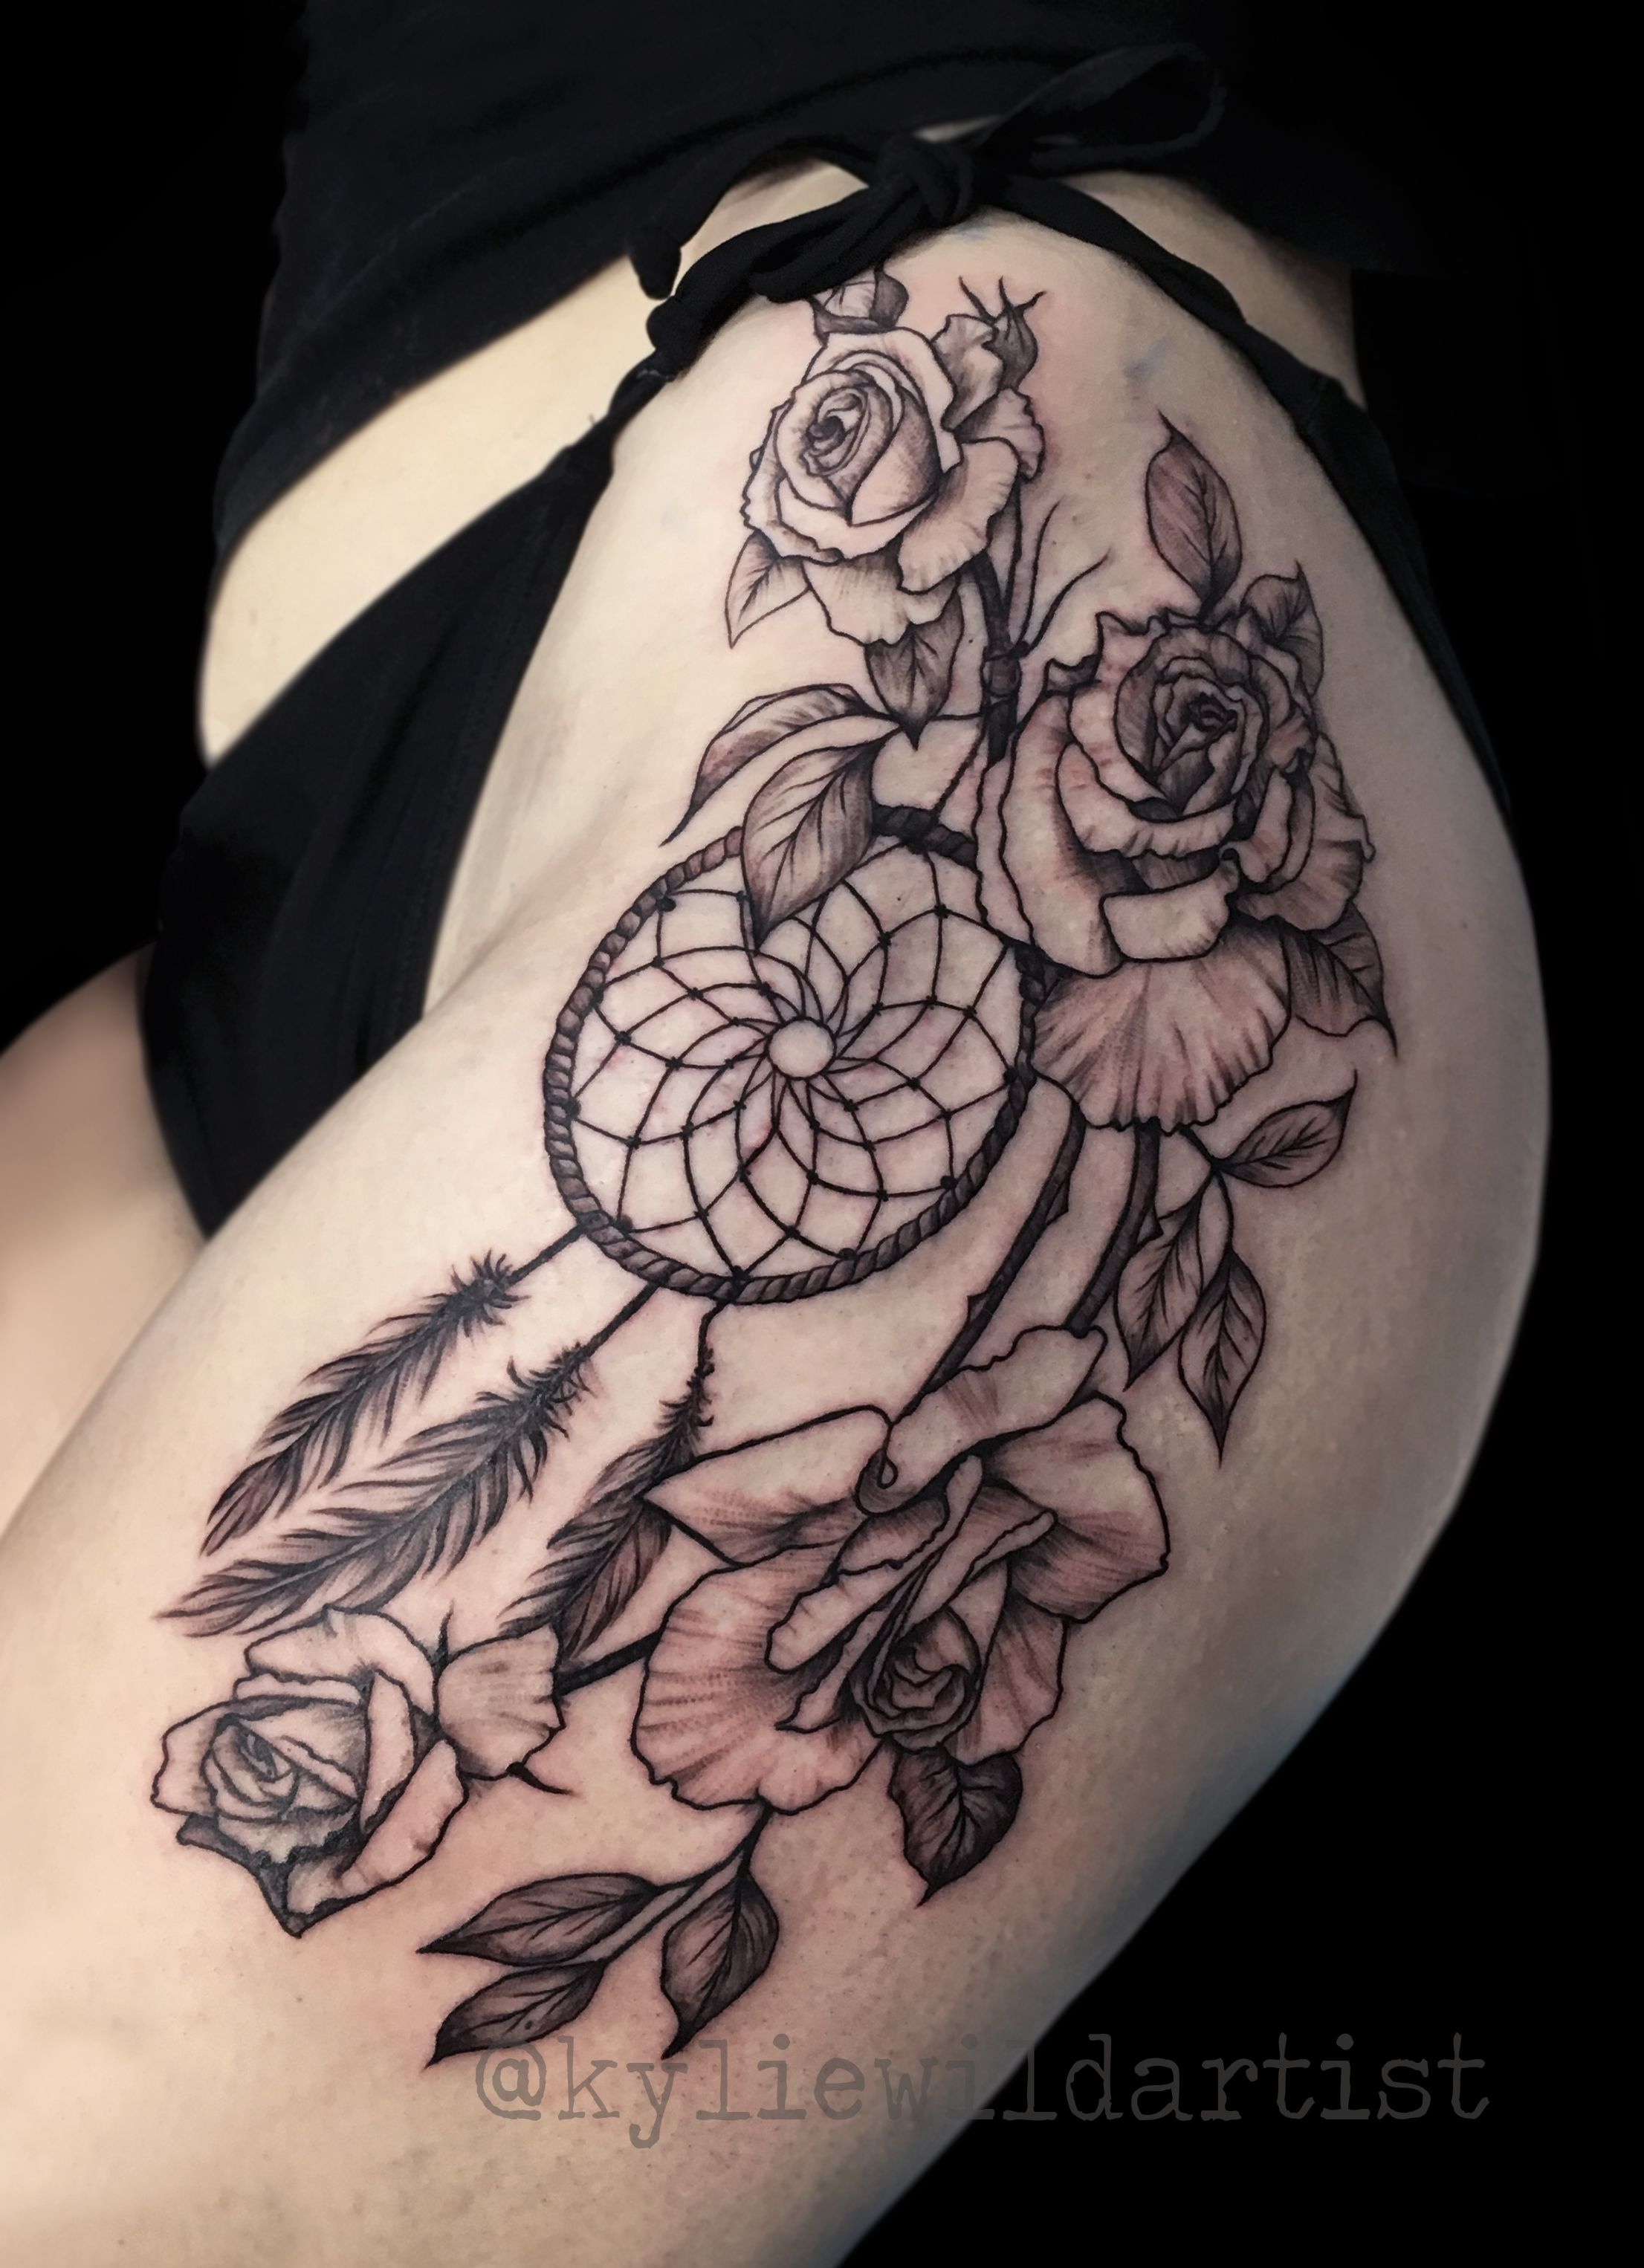 Roses and a dream catcher thigh tattoo in black and grey by kylie